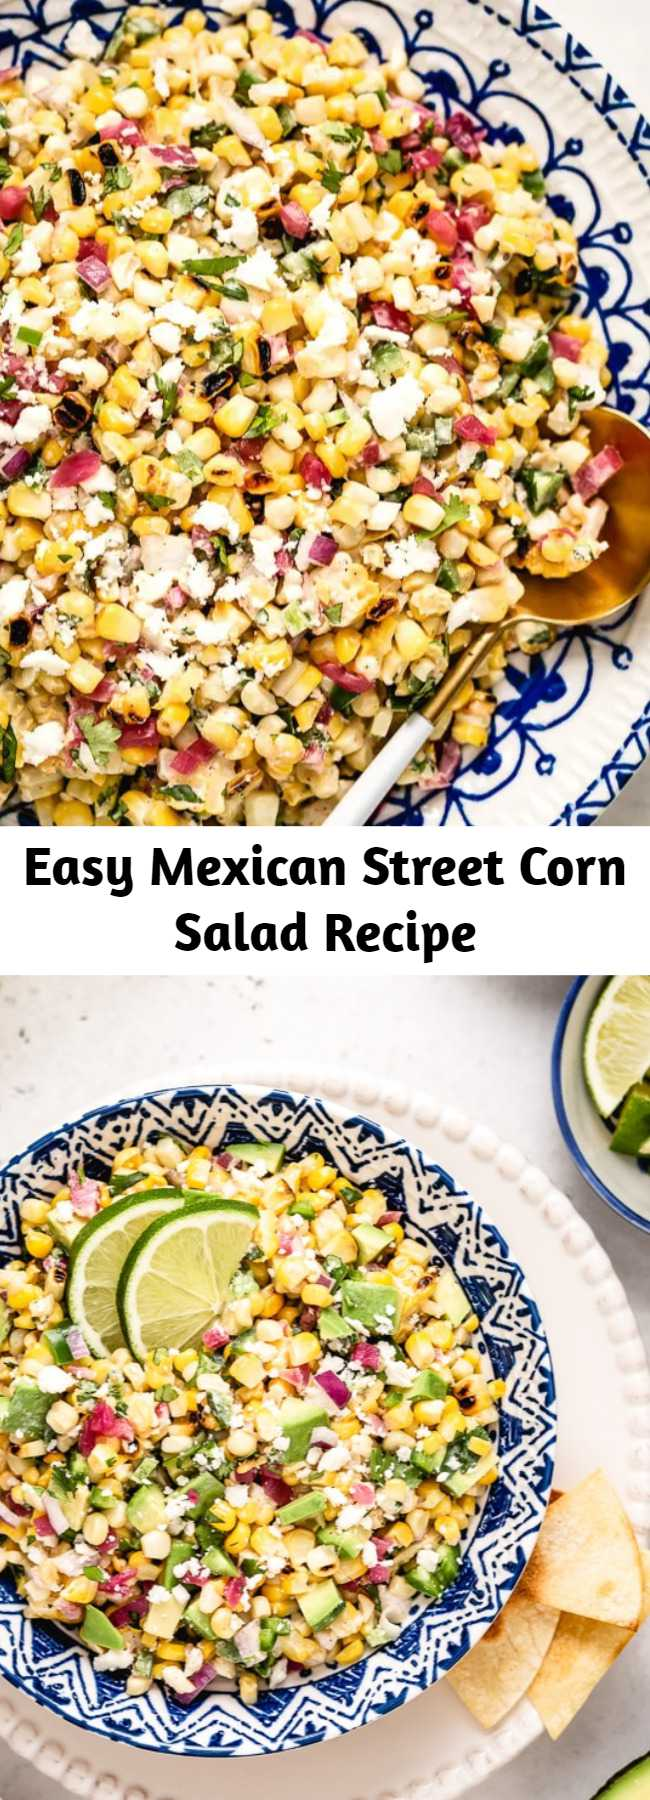 Easy Mexican Street Corn Salad Recipe - This Mexican Street Corn Salad recipe (aka Esquites or Elote salad) is tangy, spicy, and deliciously creamy. Whether you cook the corn on the grill or in a skillet, this easy Mexican corn salad is guaranteed to be a hit for all your summer gatherings. #corn #salad #cornsalad #mexicancorn #mexicansalad #sweetcornsalad